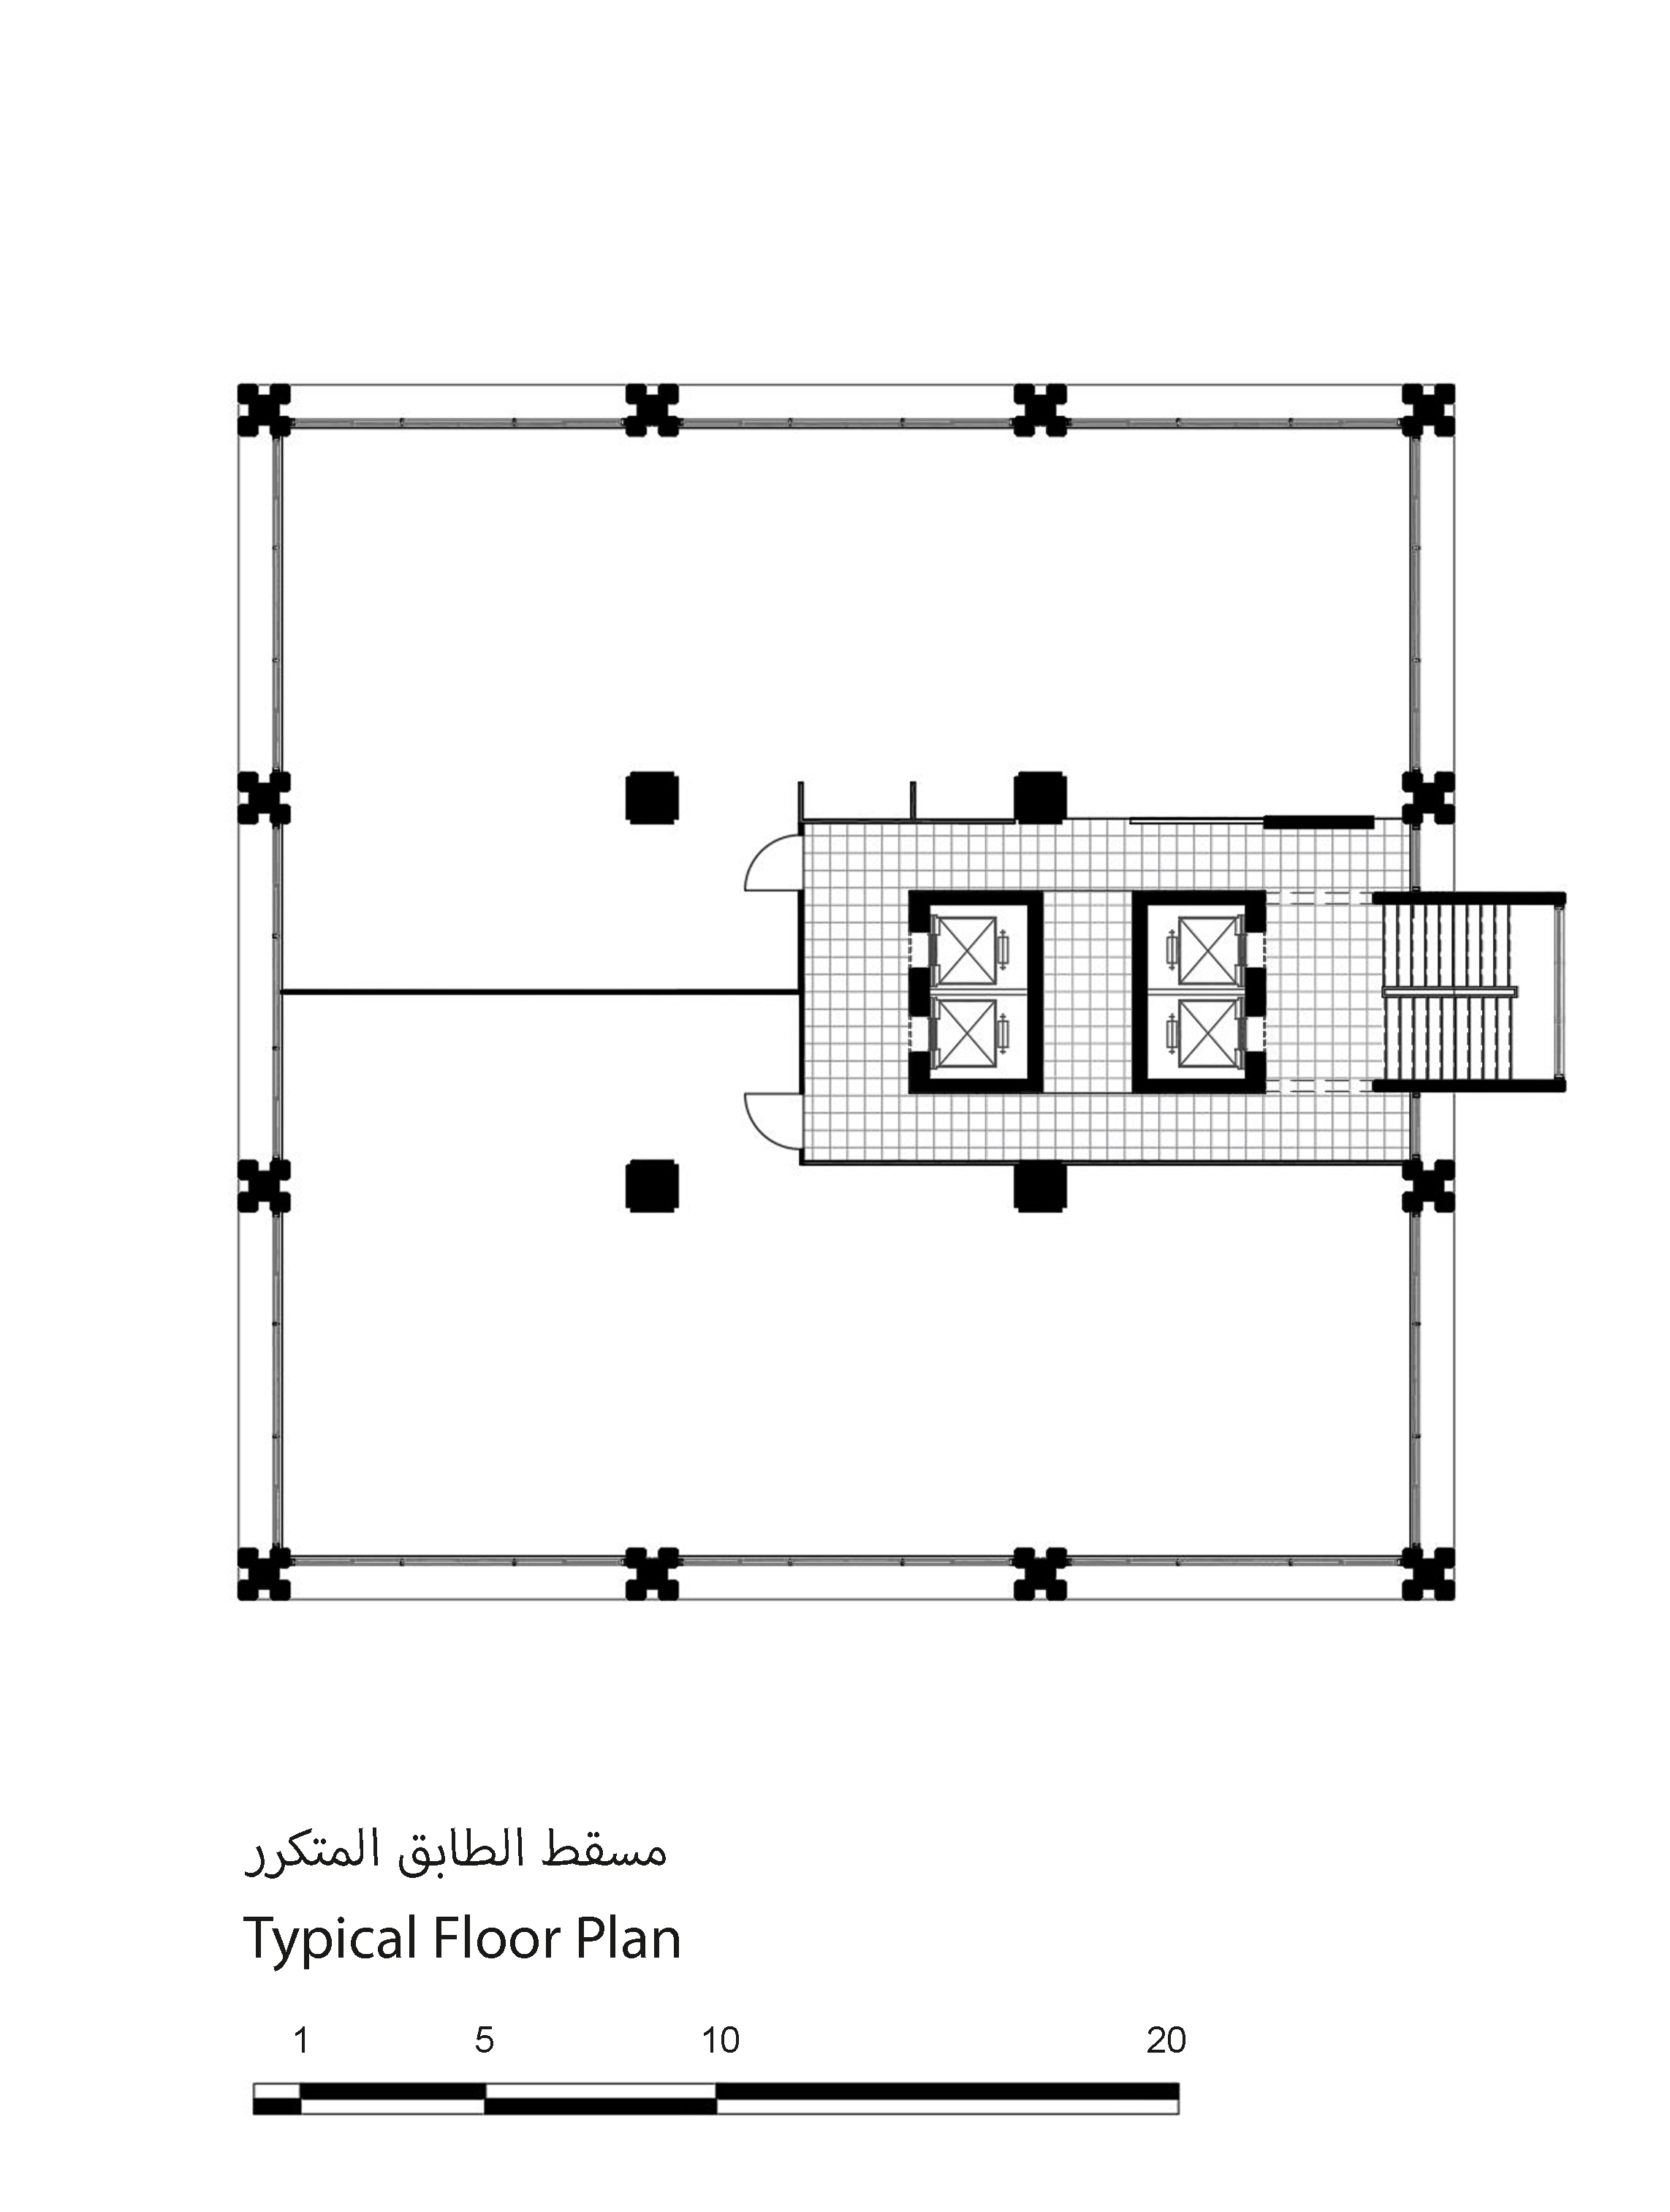 C:UsersDELLDownloadsAdham Centre Typical Floor Plan Model (1